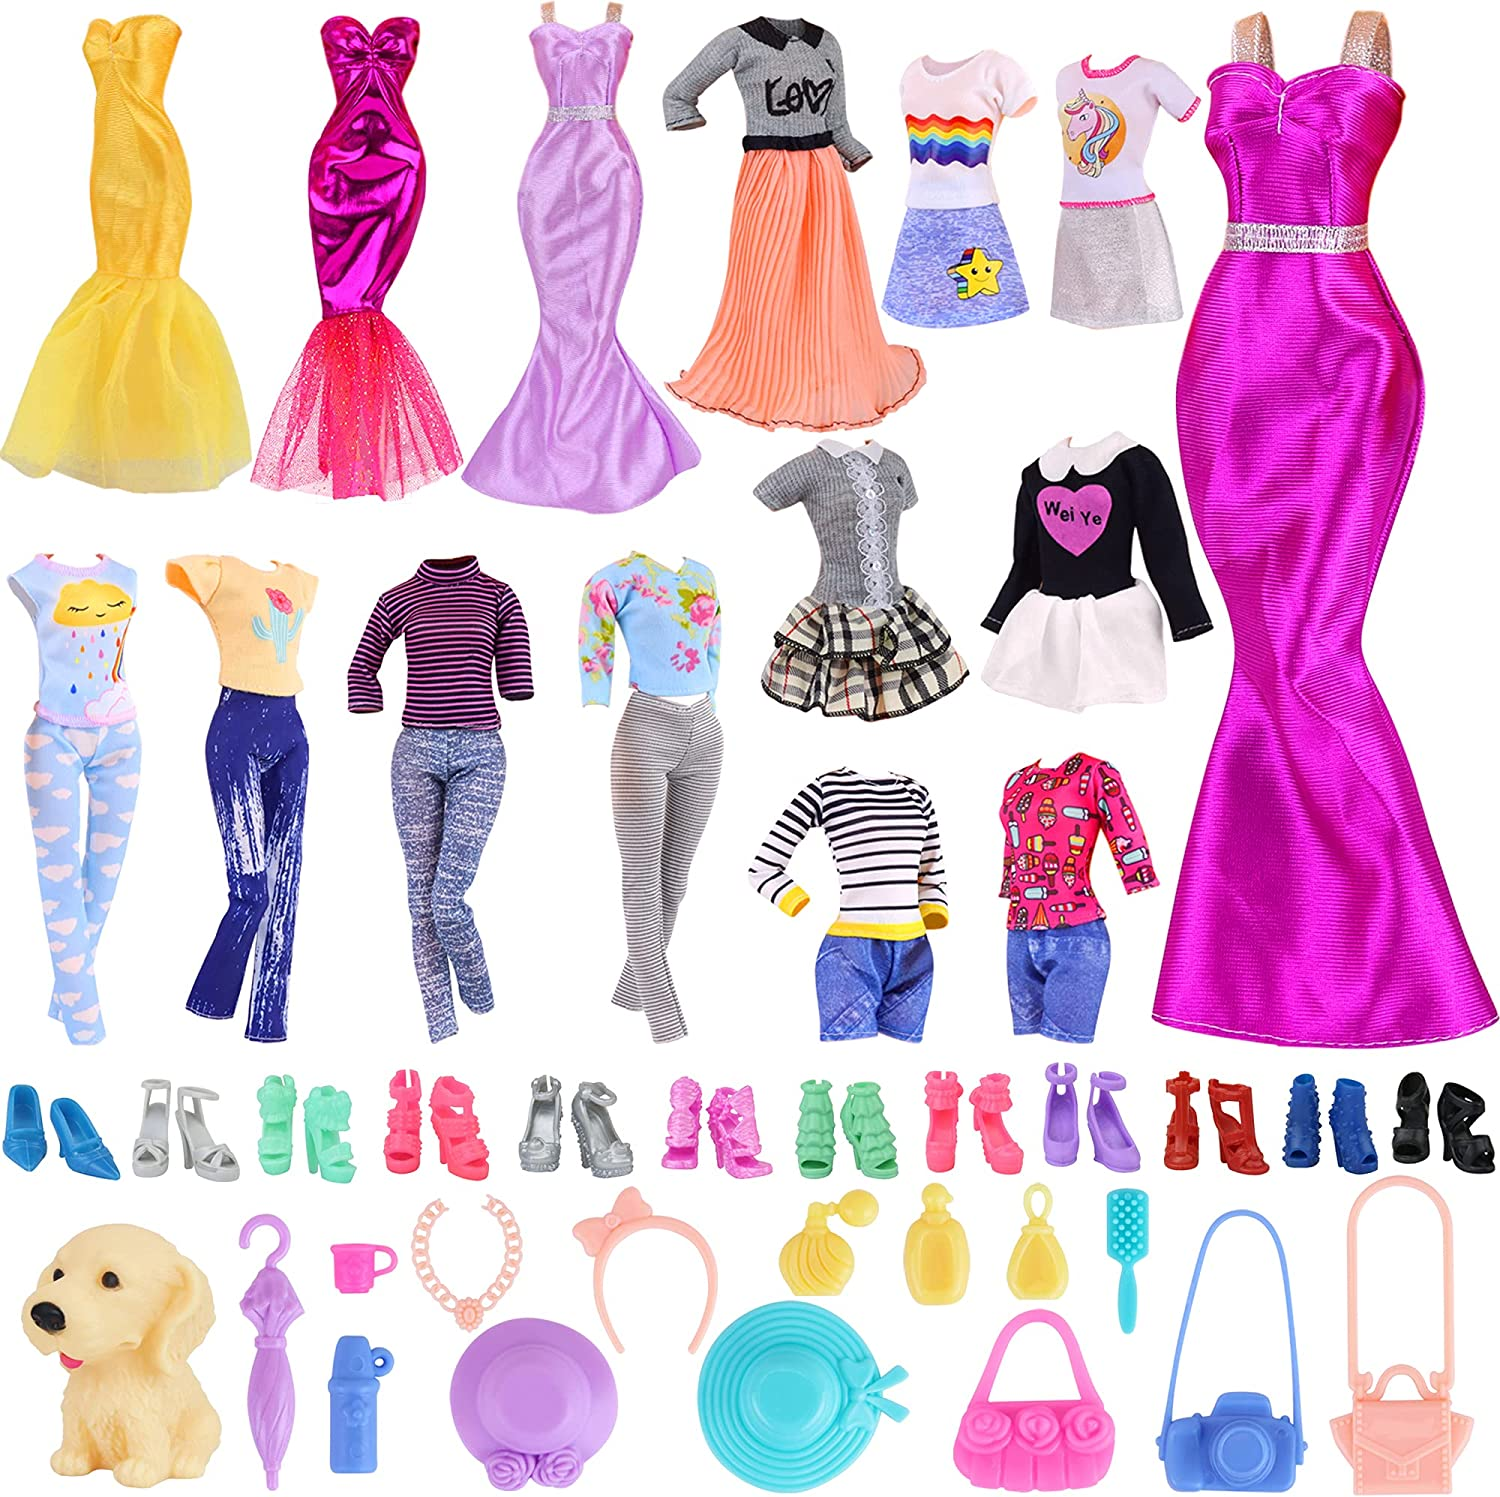 K.T. Max 45% OFF Fancy 35 PCS Doll Clothes Accessories Max 48% OFF 5 Fashion and